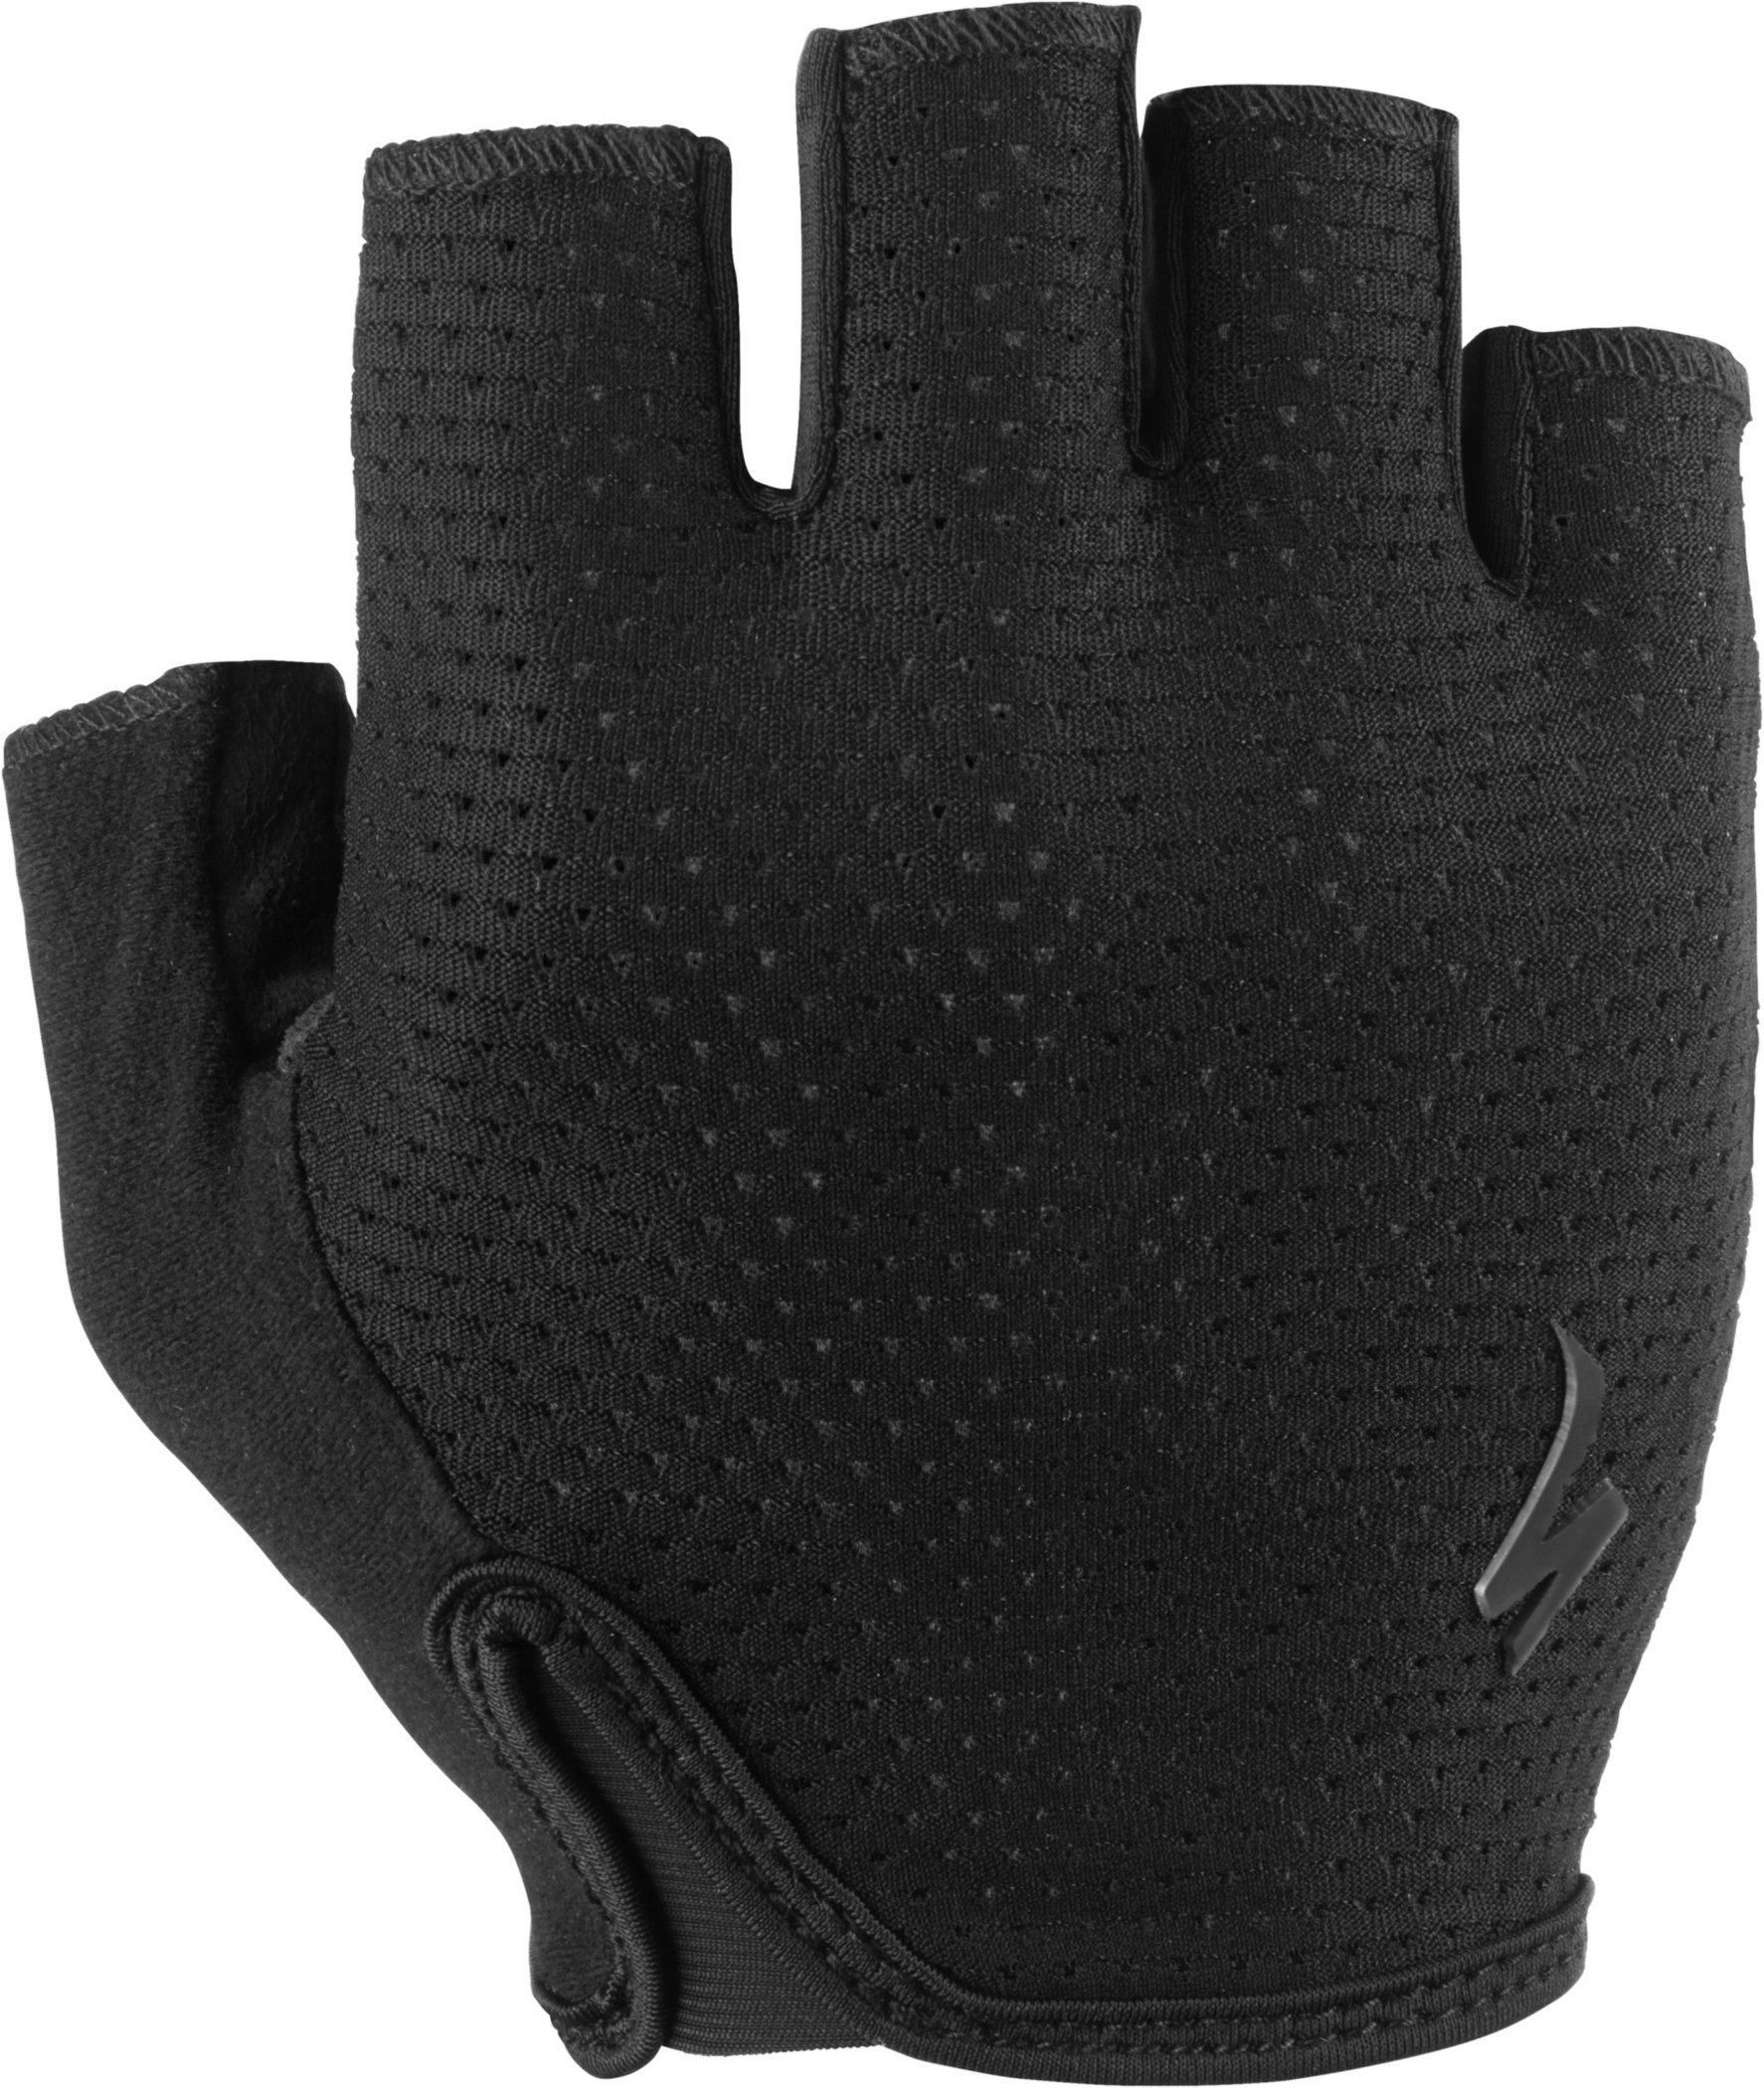 Specialized Grail Gloves Black Large - Alpha Bikes